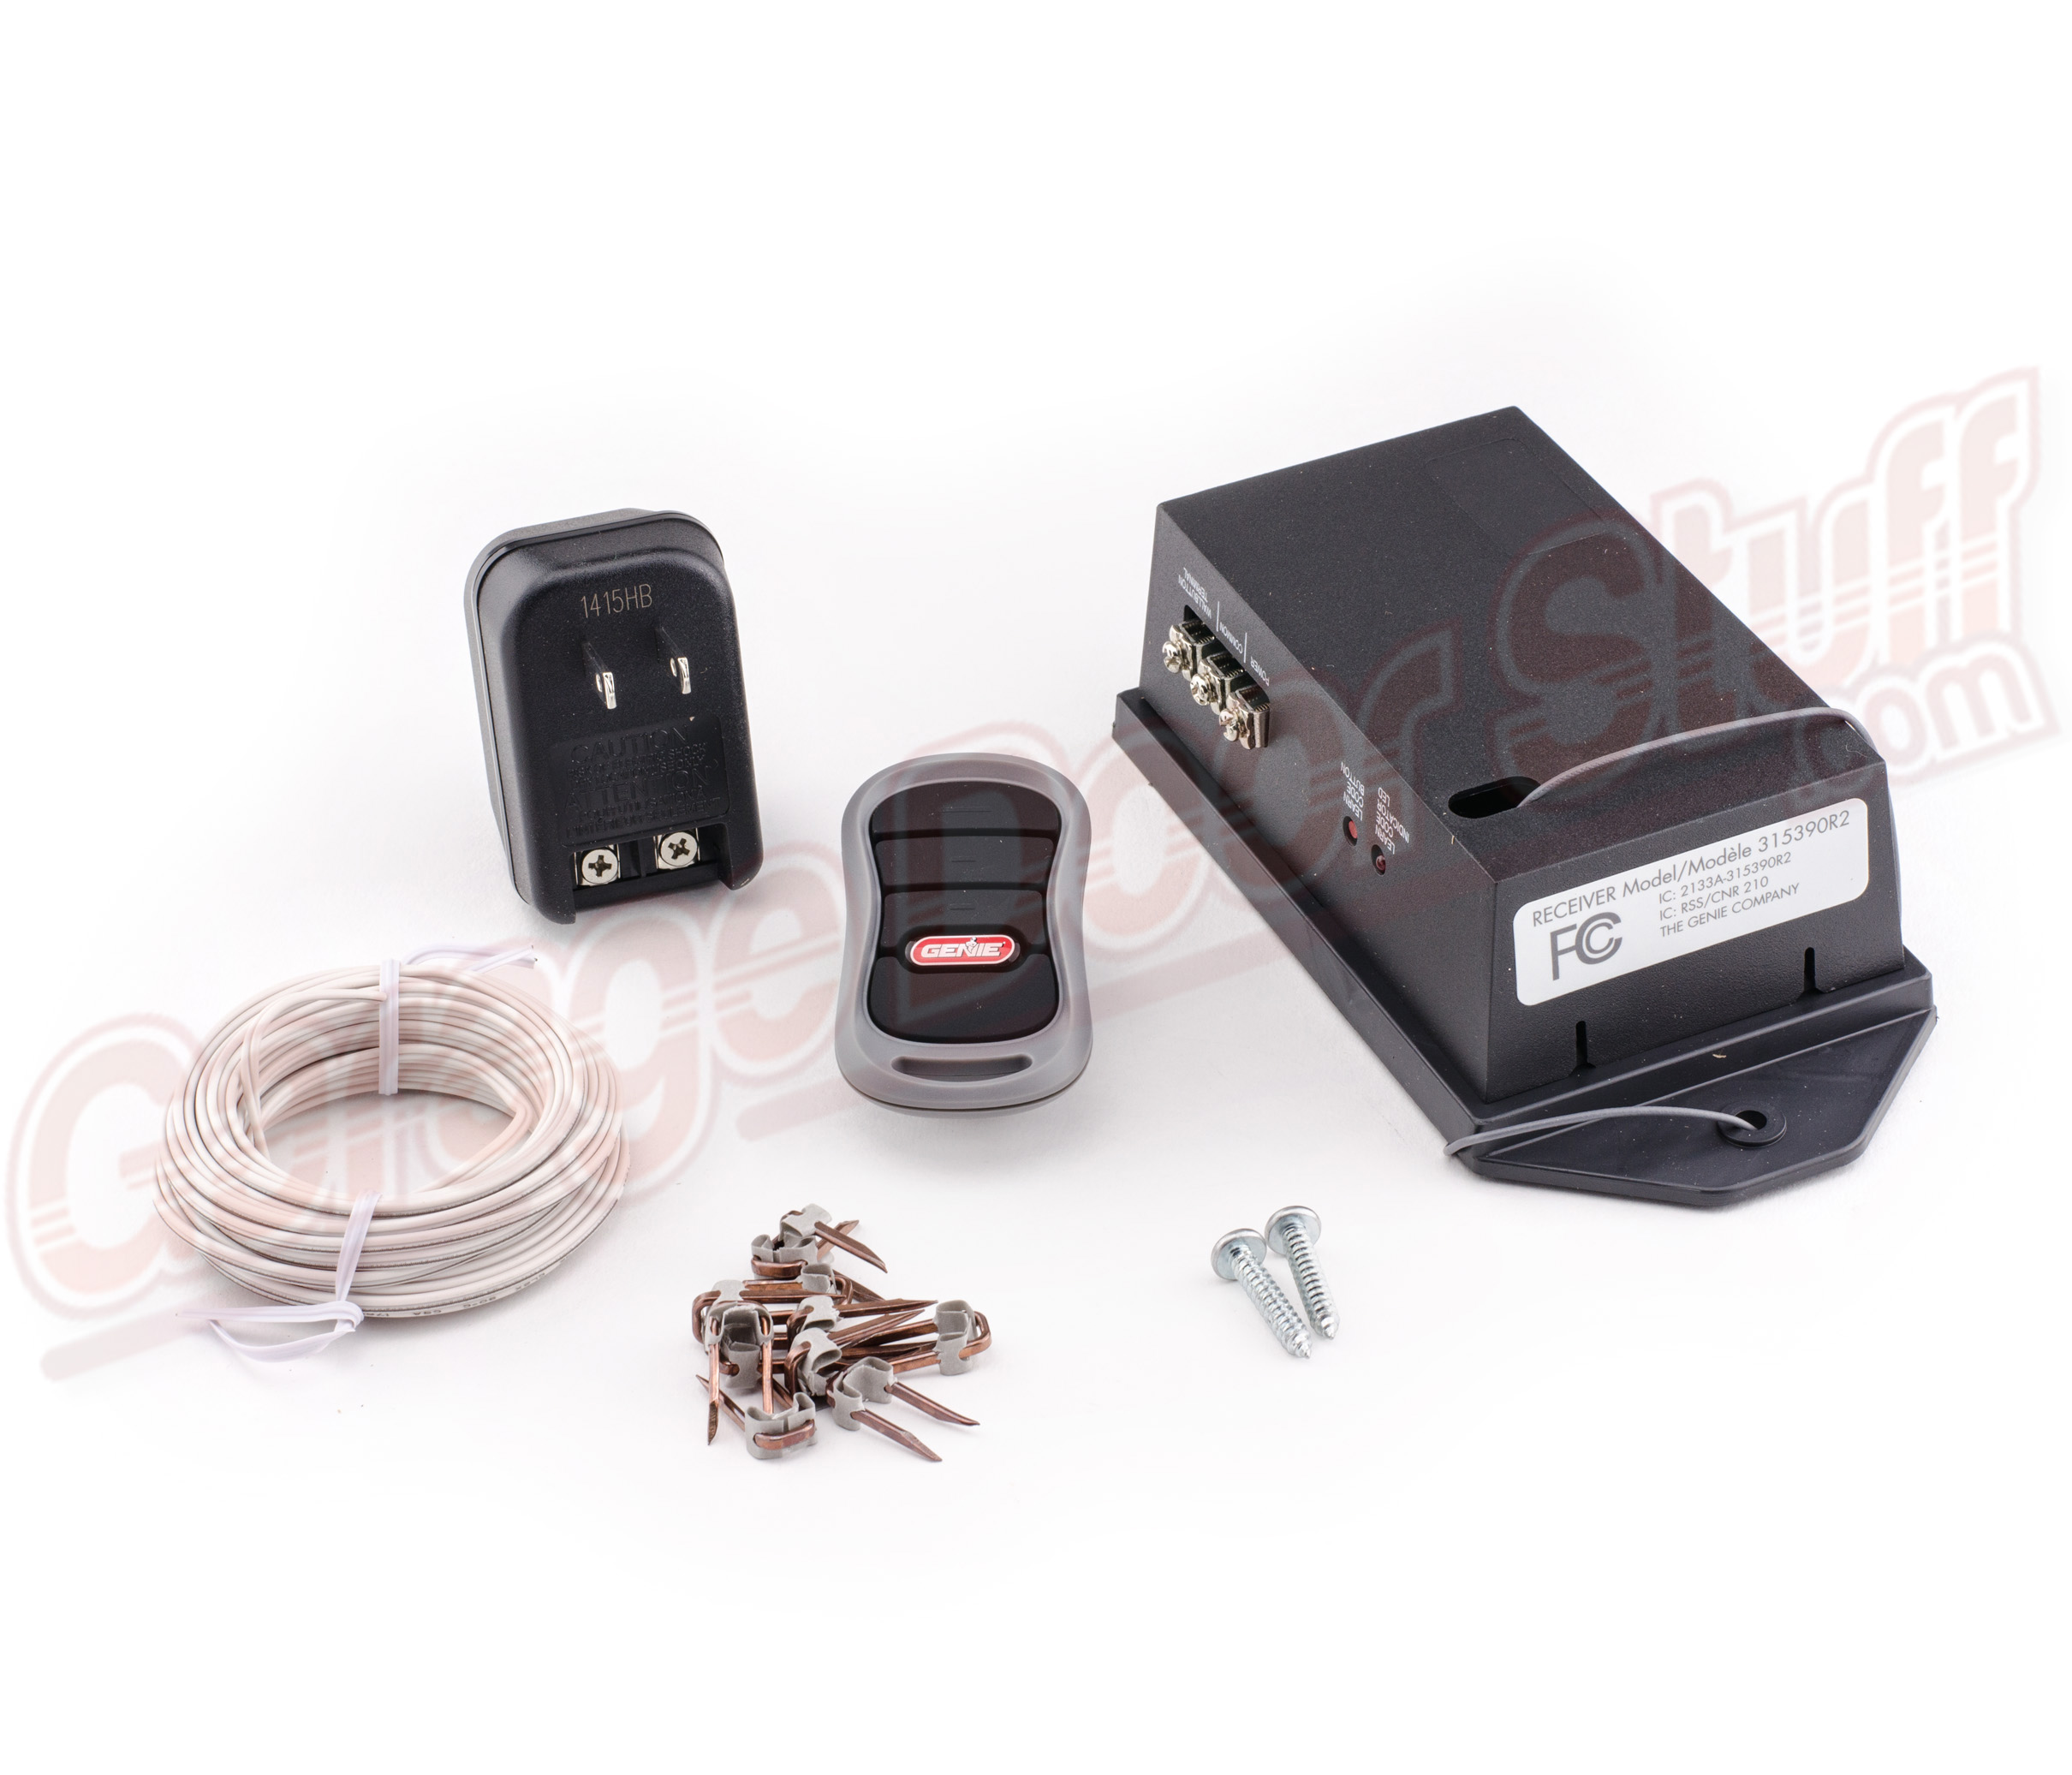 Garage Door Opener Remote Genie Girud 1t Garage Opener Remote Receiver Conversion Kit